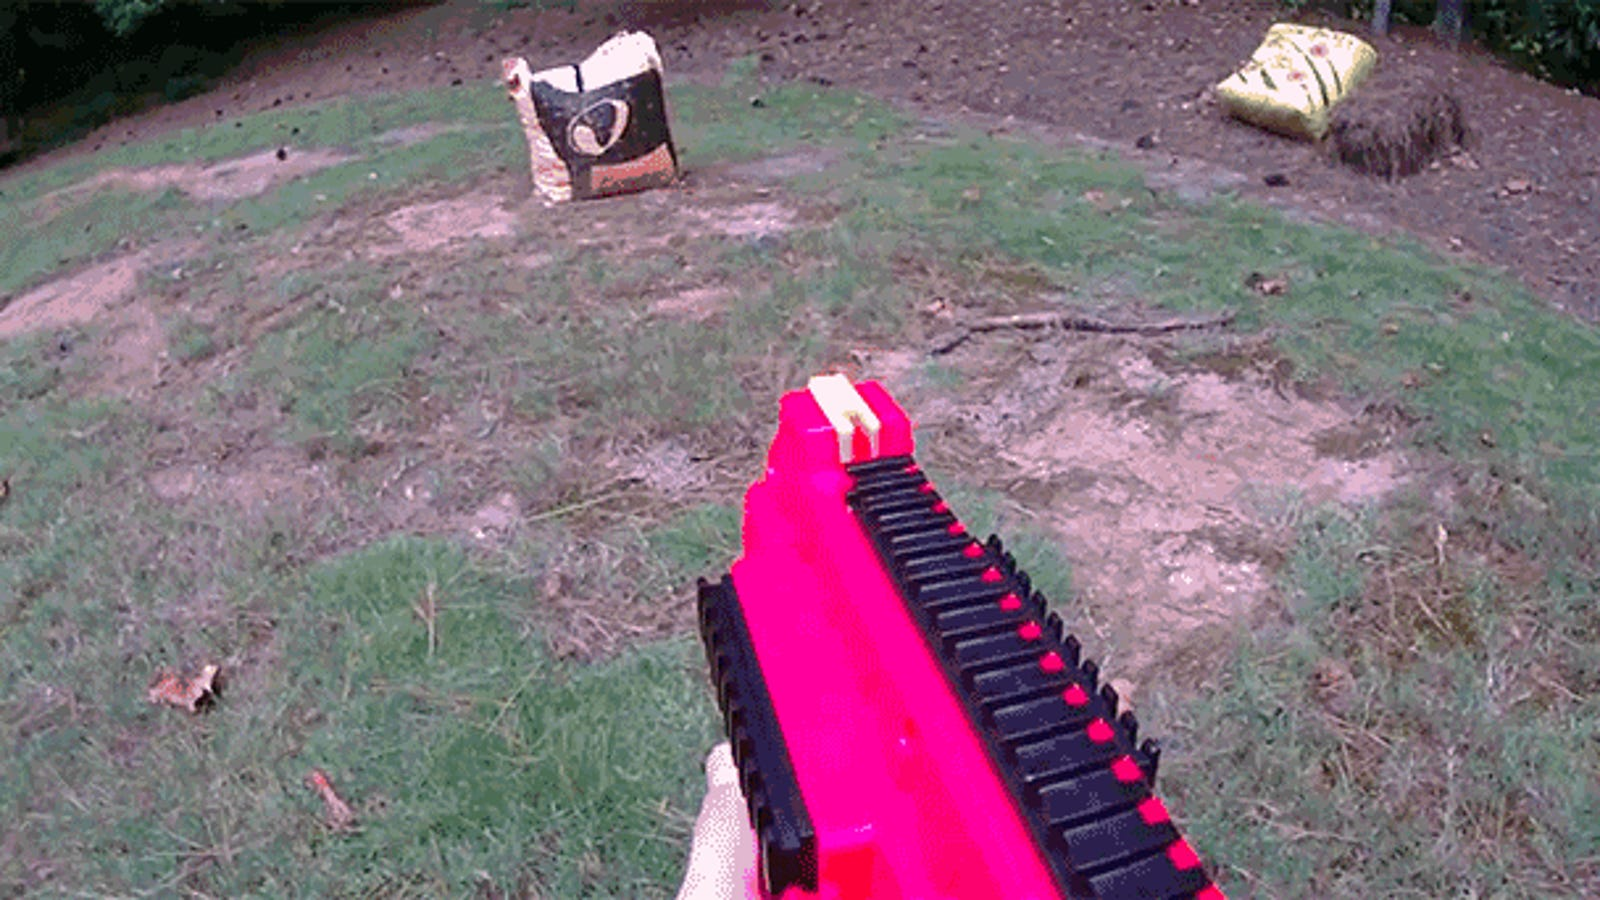 Guy Upgrades Nerf's New 70 MPH Rival Zeus Blaster To Be Fully Automatic